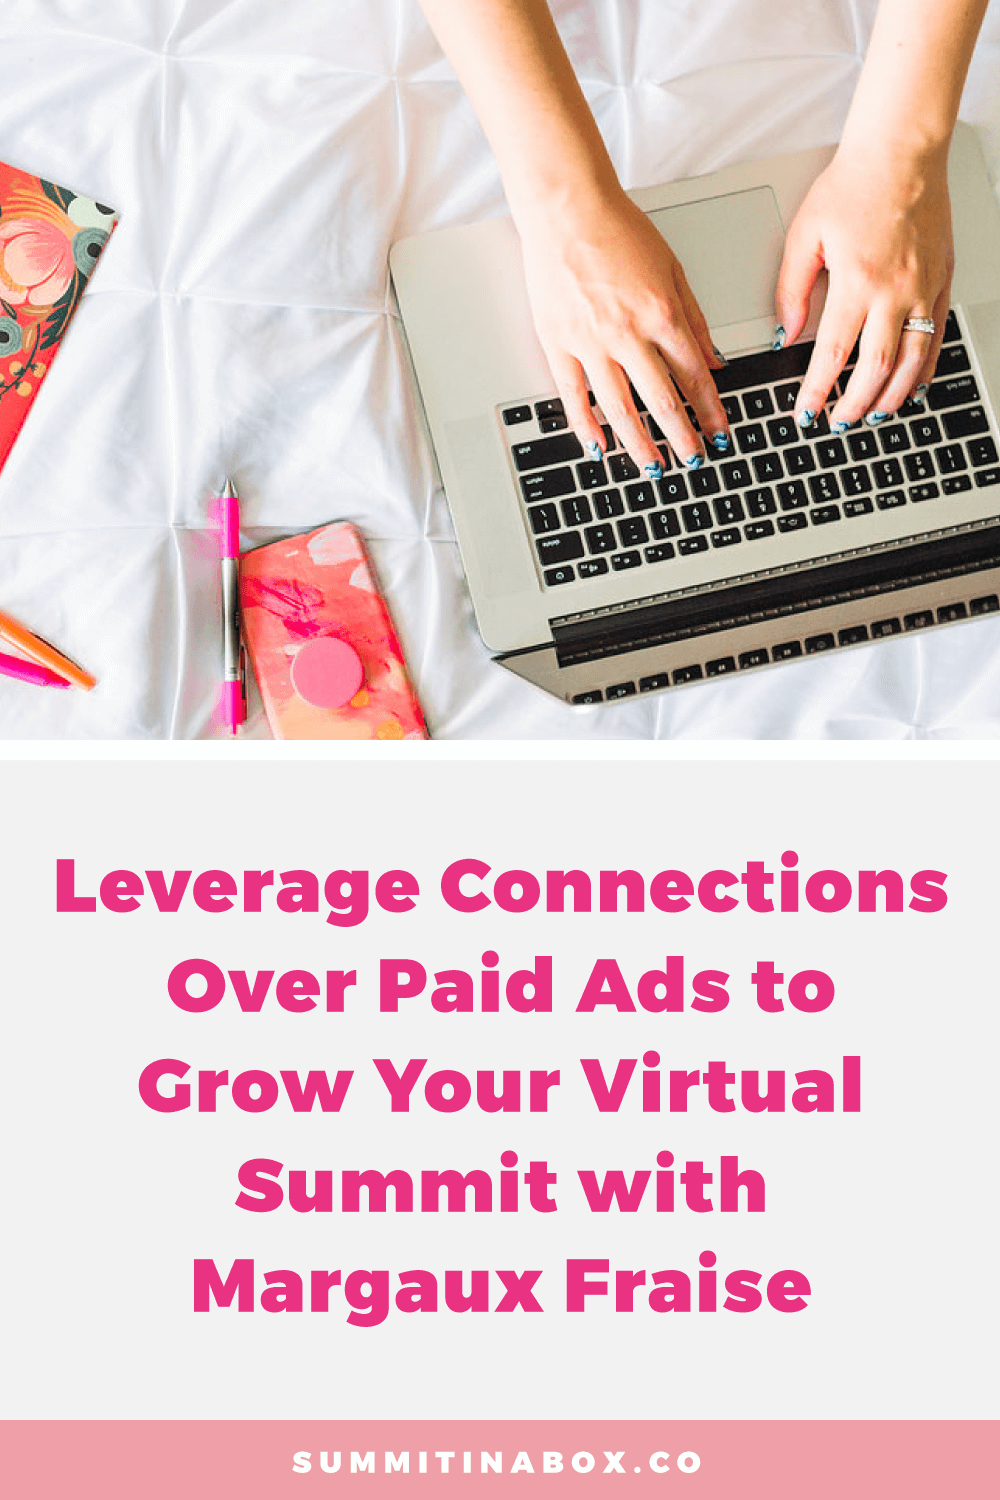 Learn to host a virtual summit without relying on paid advertising. Instead, leverage community and connection to host an event that exceeds your goals.